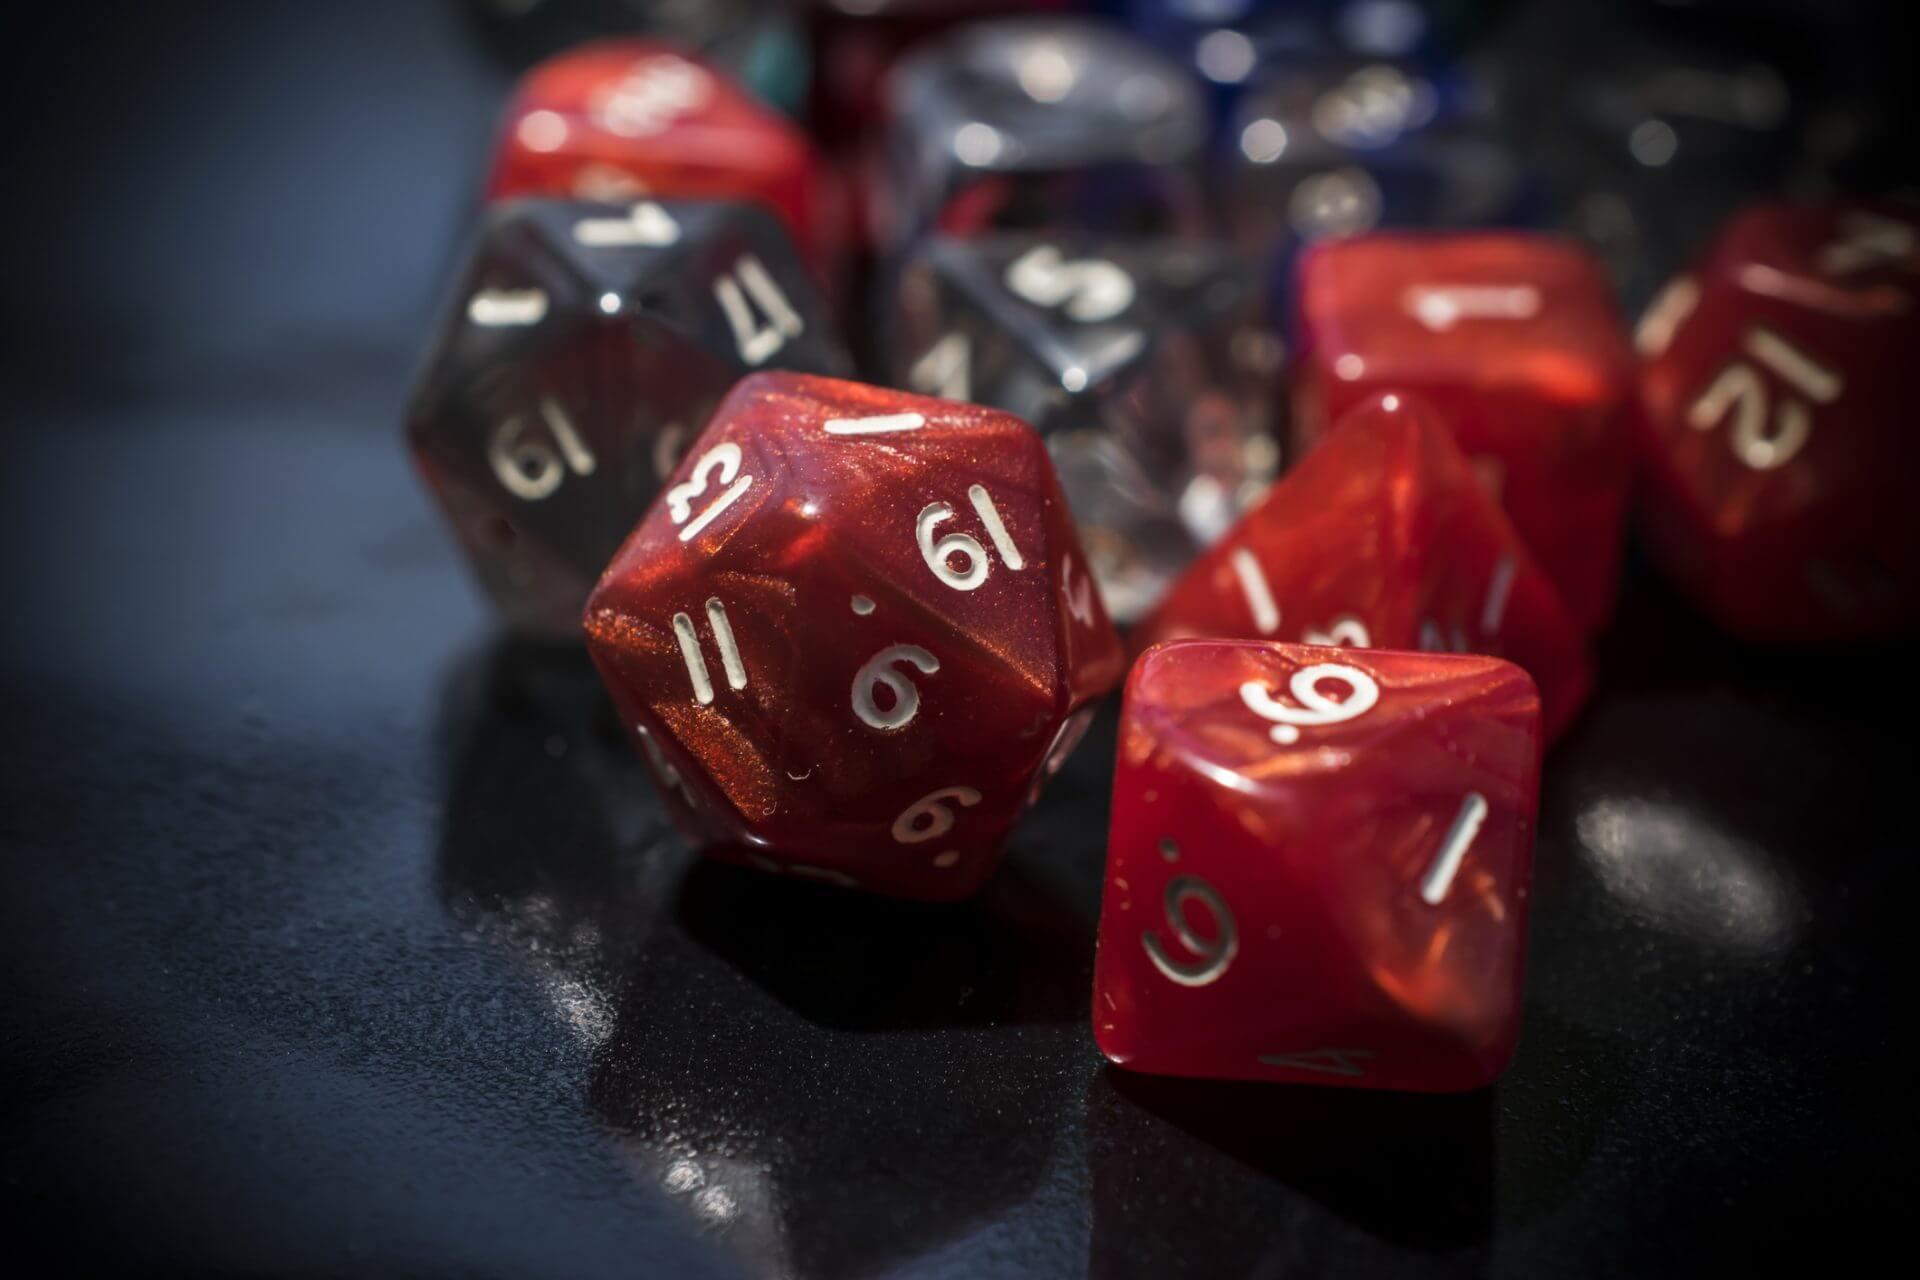 What Are The Best Dnd Dice Arcane Eye 36,584 likes · 423 talking about this. what are the best dnd dice arcane eye